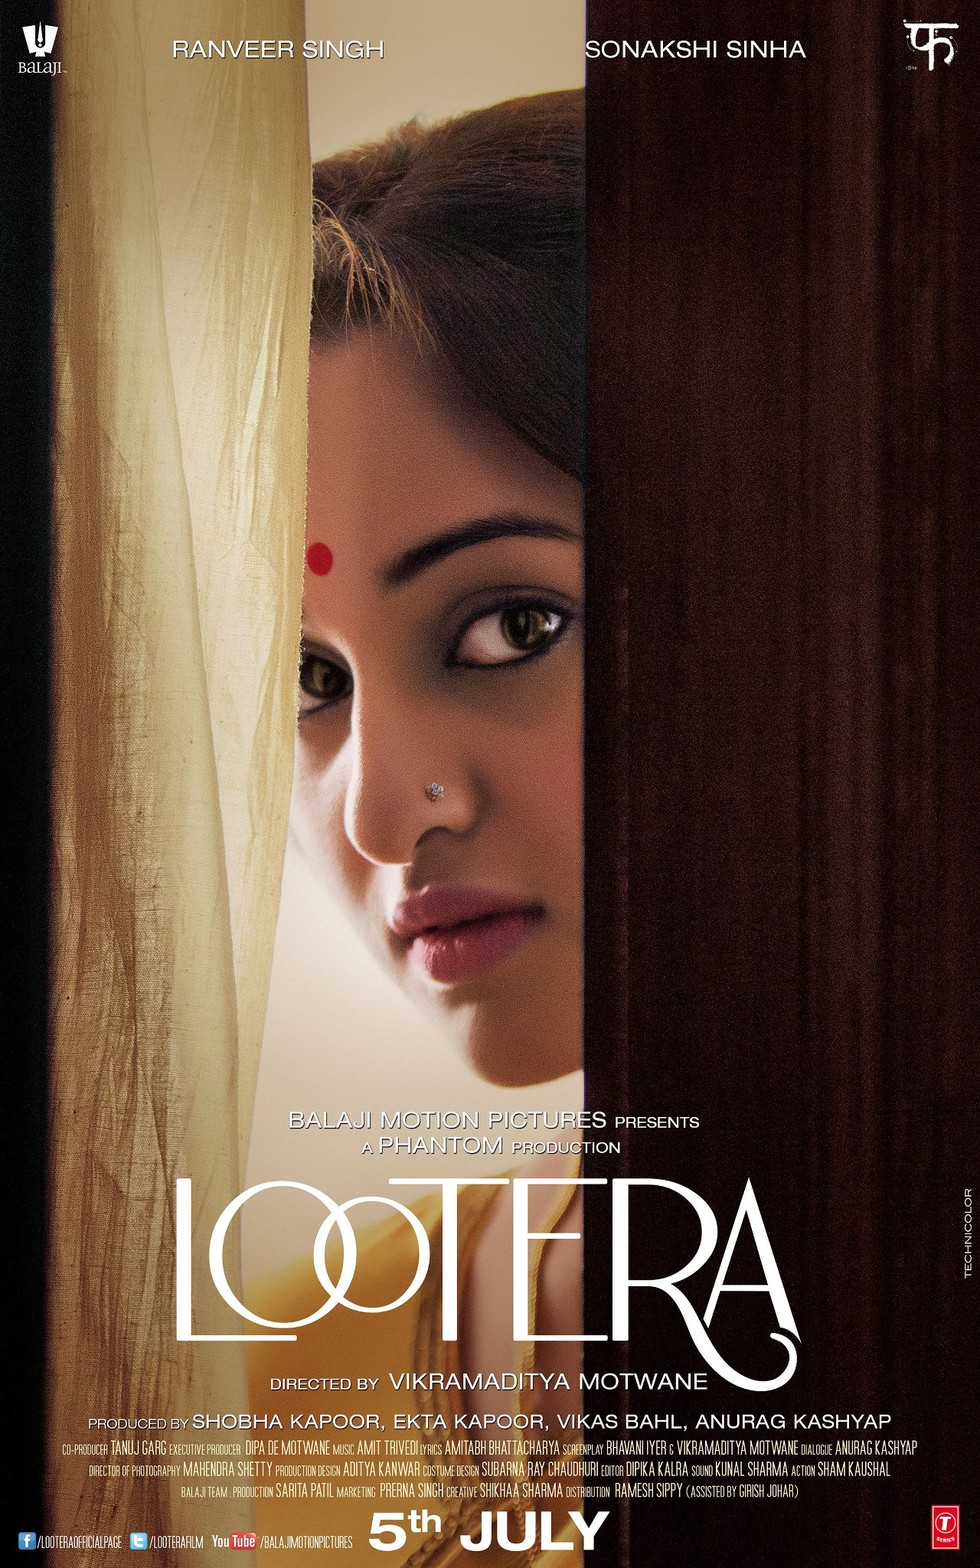 Lootera - Movie Poster #2 (Large)